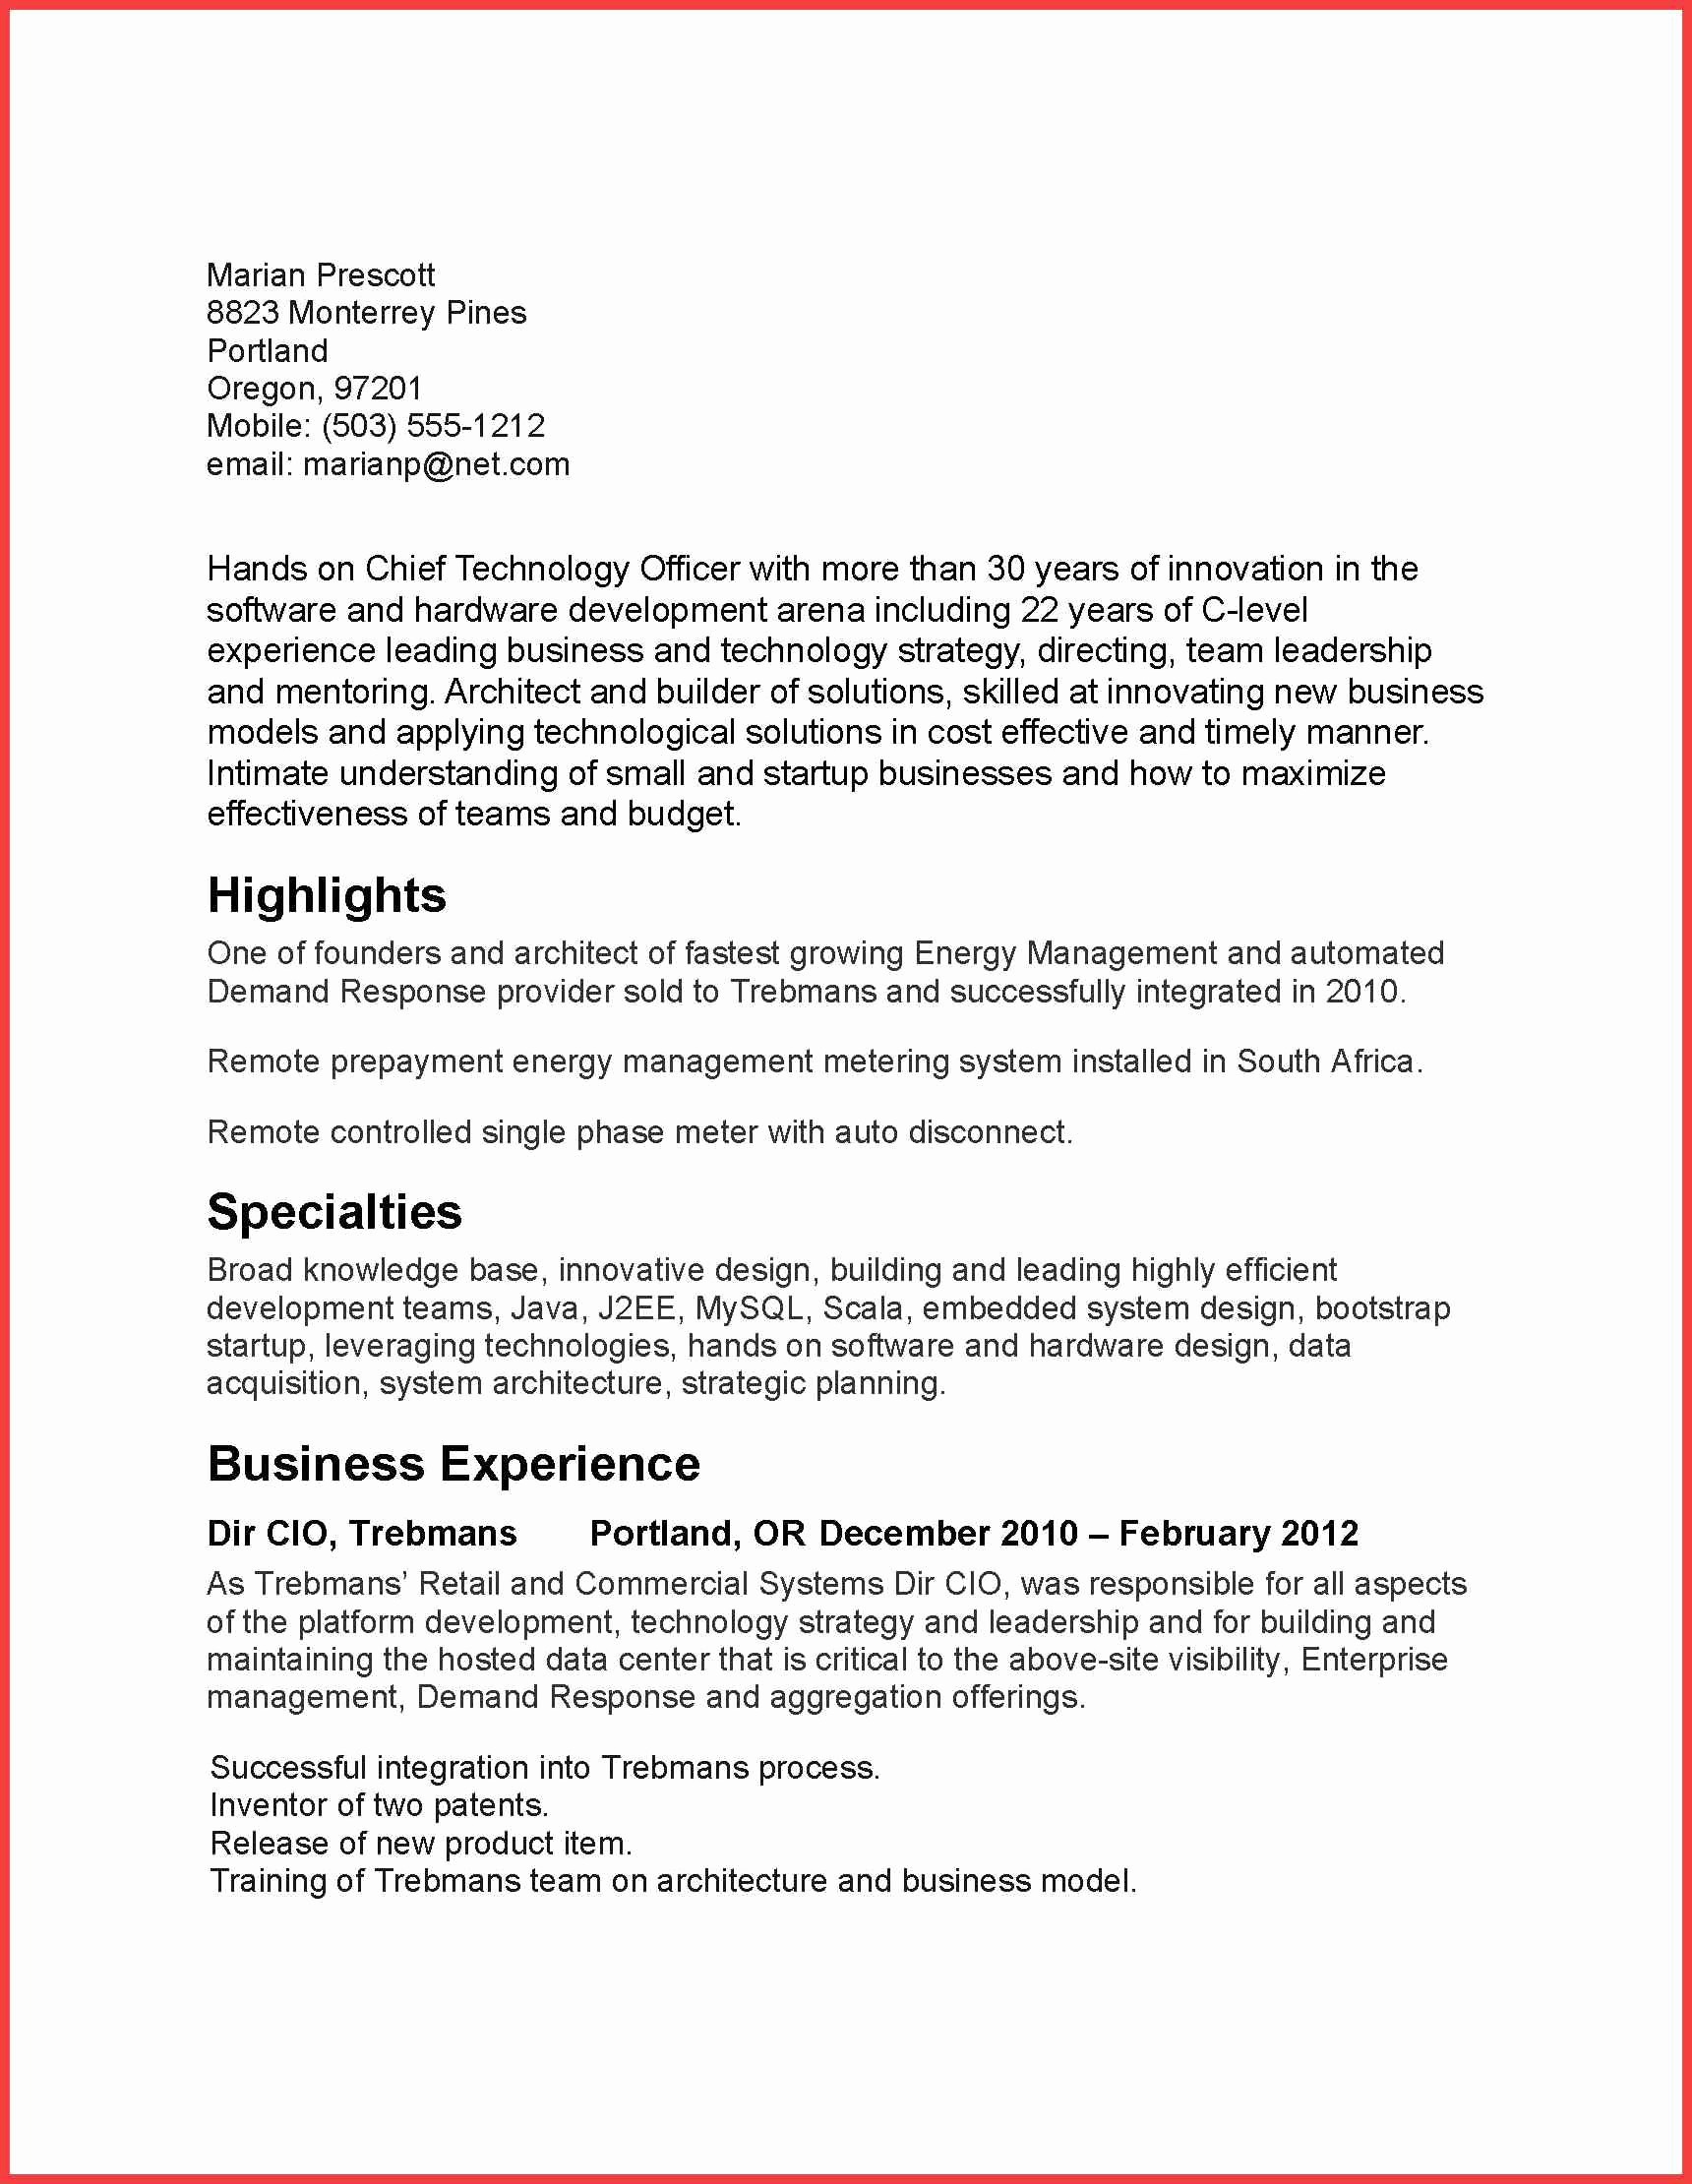 Cover Letter Templates for Resumes Lovely Cover Letter Template Pages